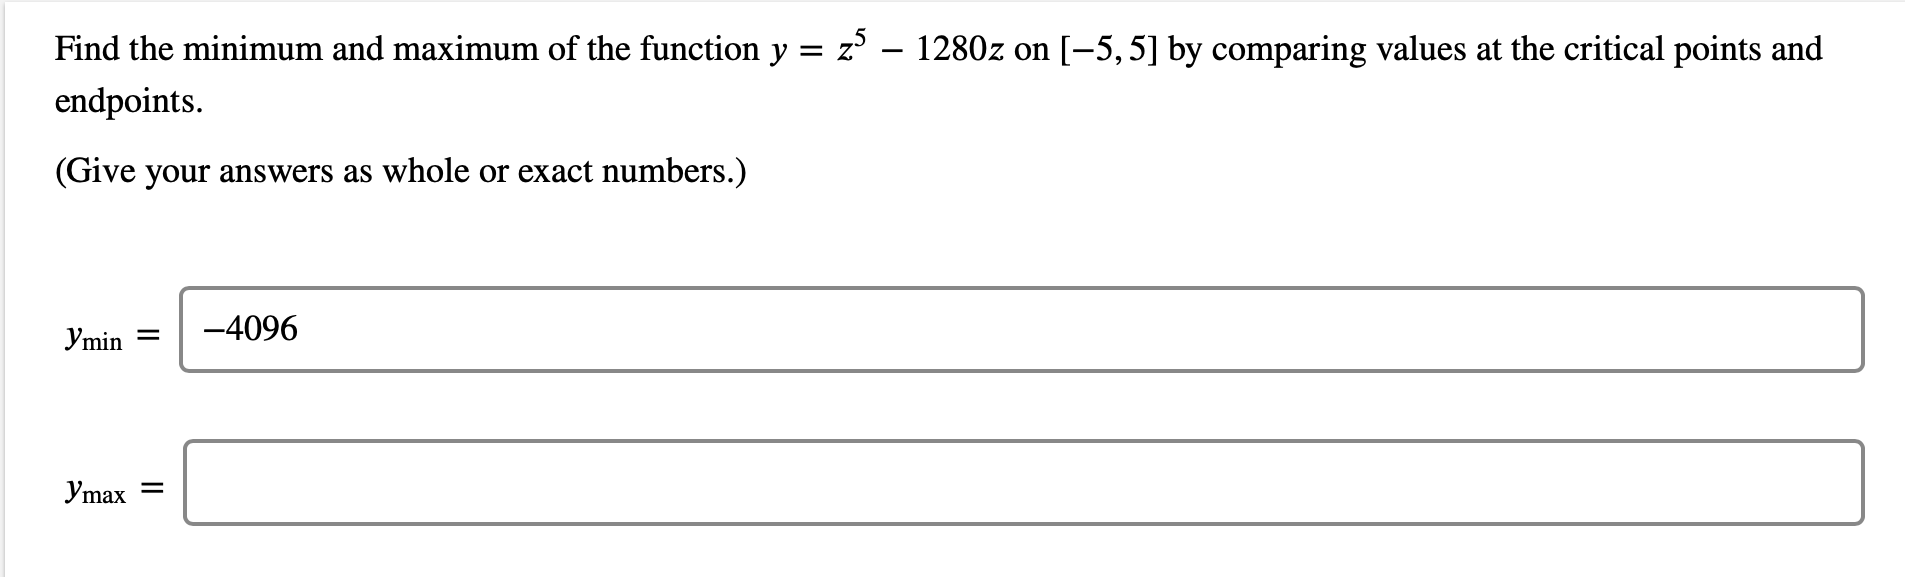 Find the minimum and maximum of the function y = z – 1280z on [-5, 5] by comparing values at the critical points and endpoints.